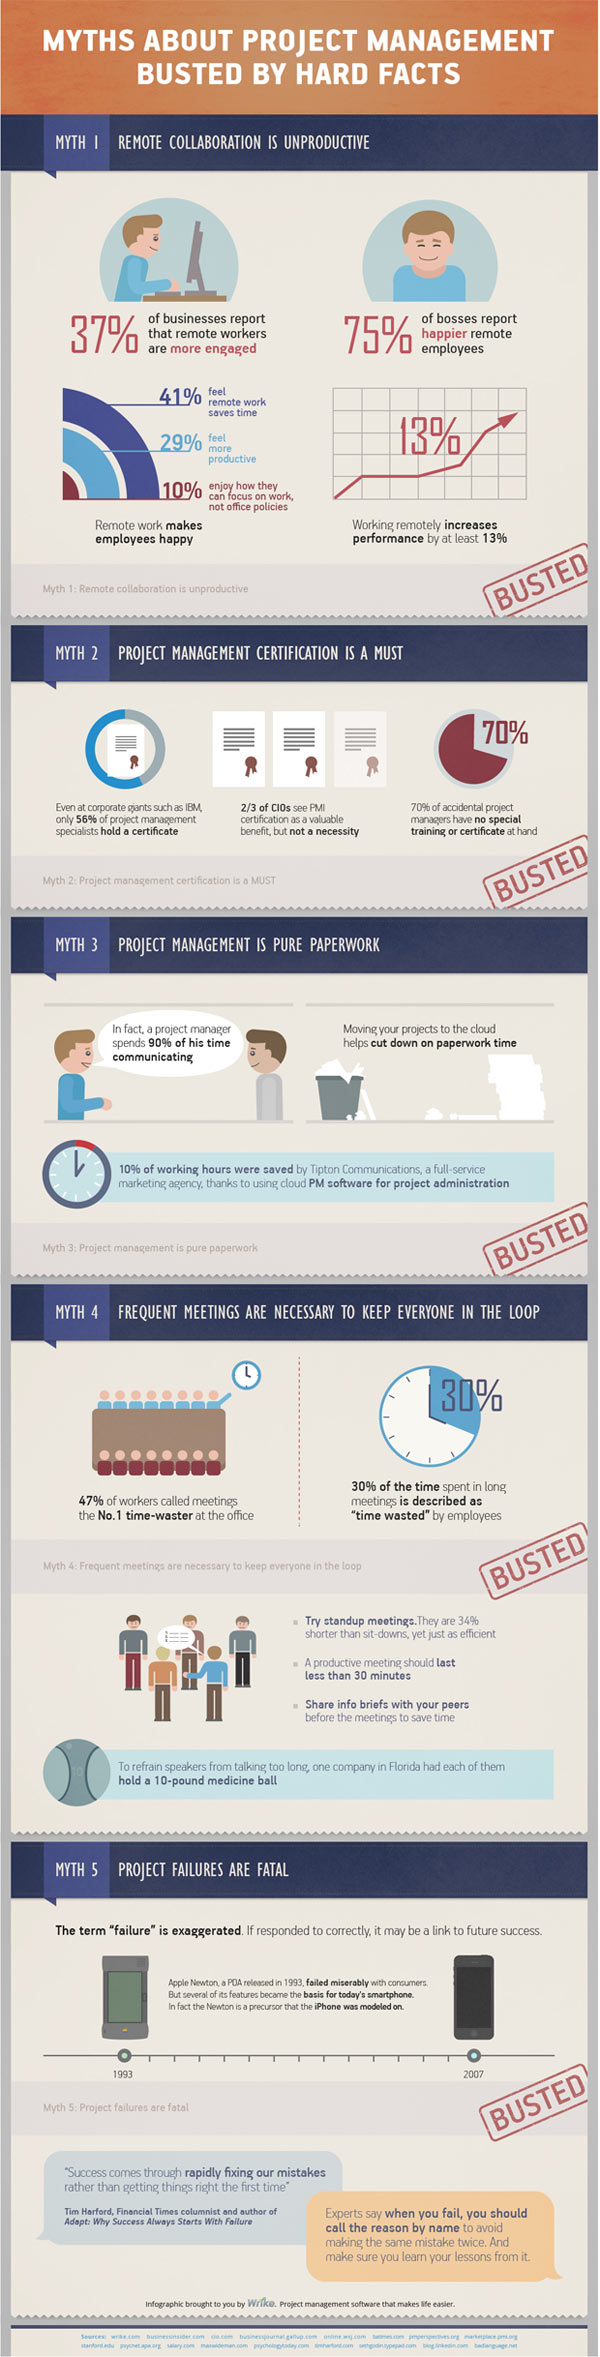 project-management-myth-infographic